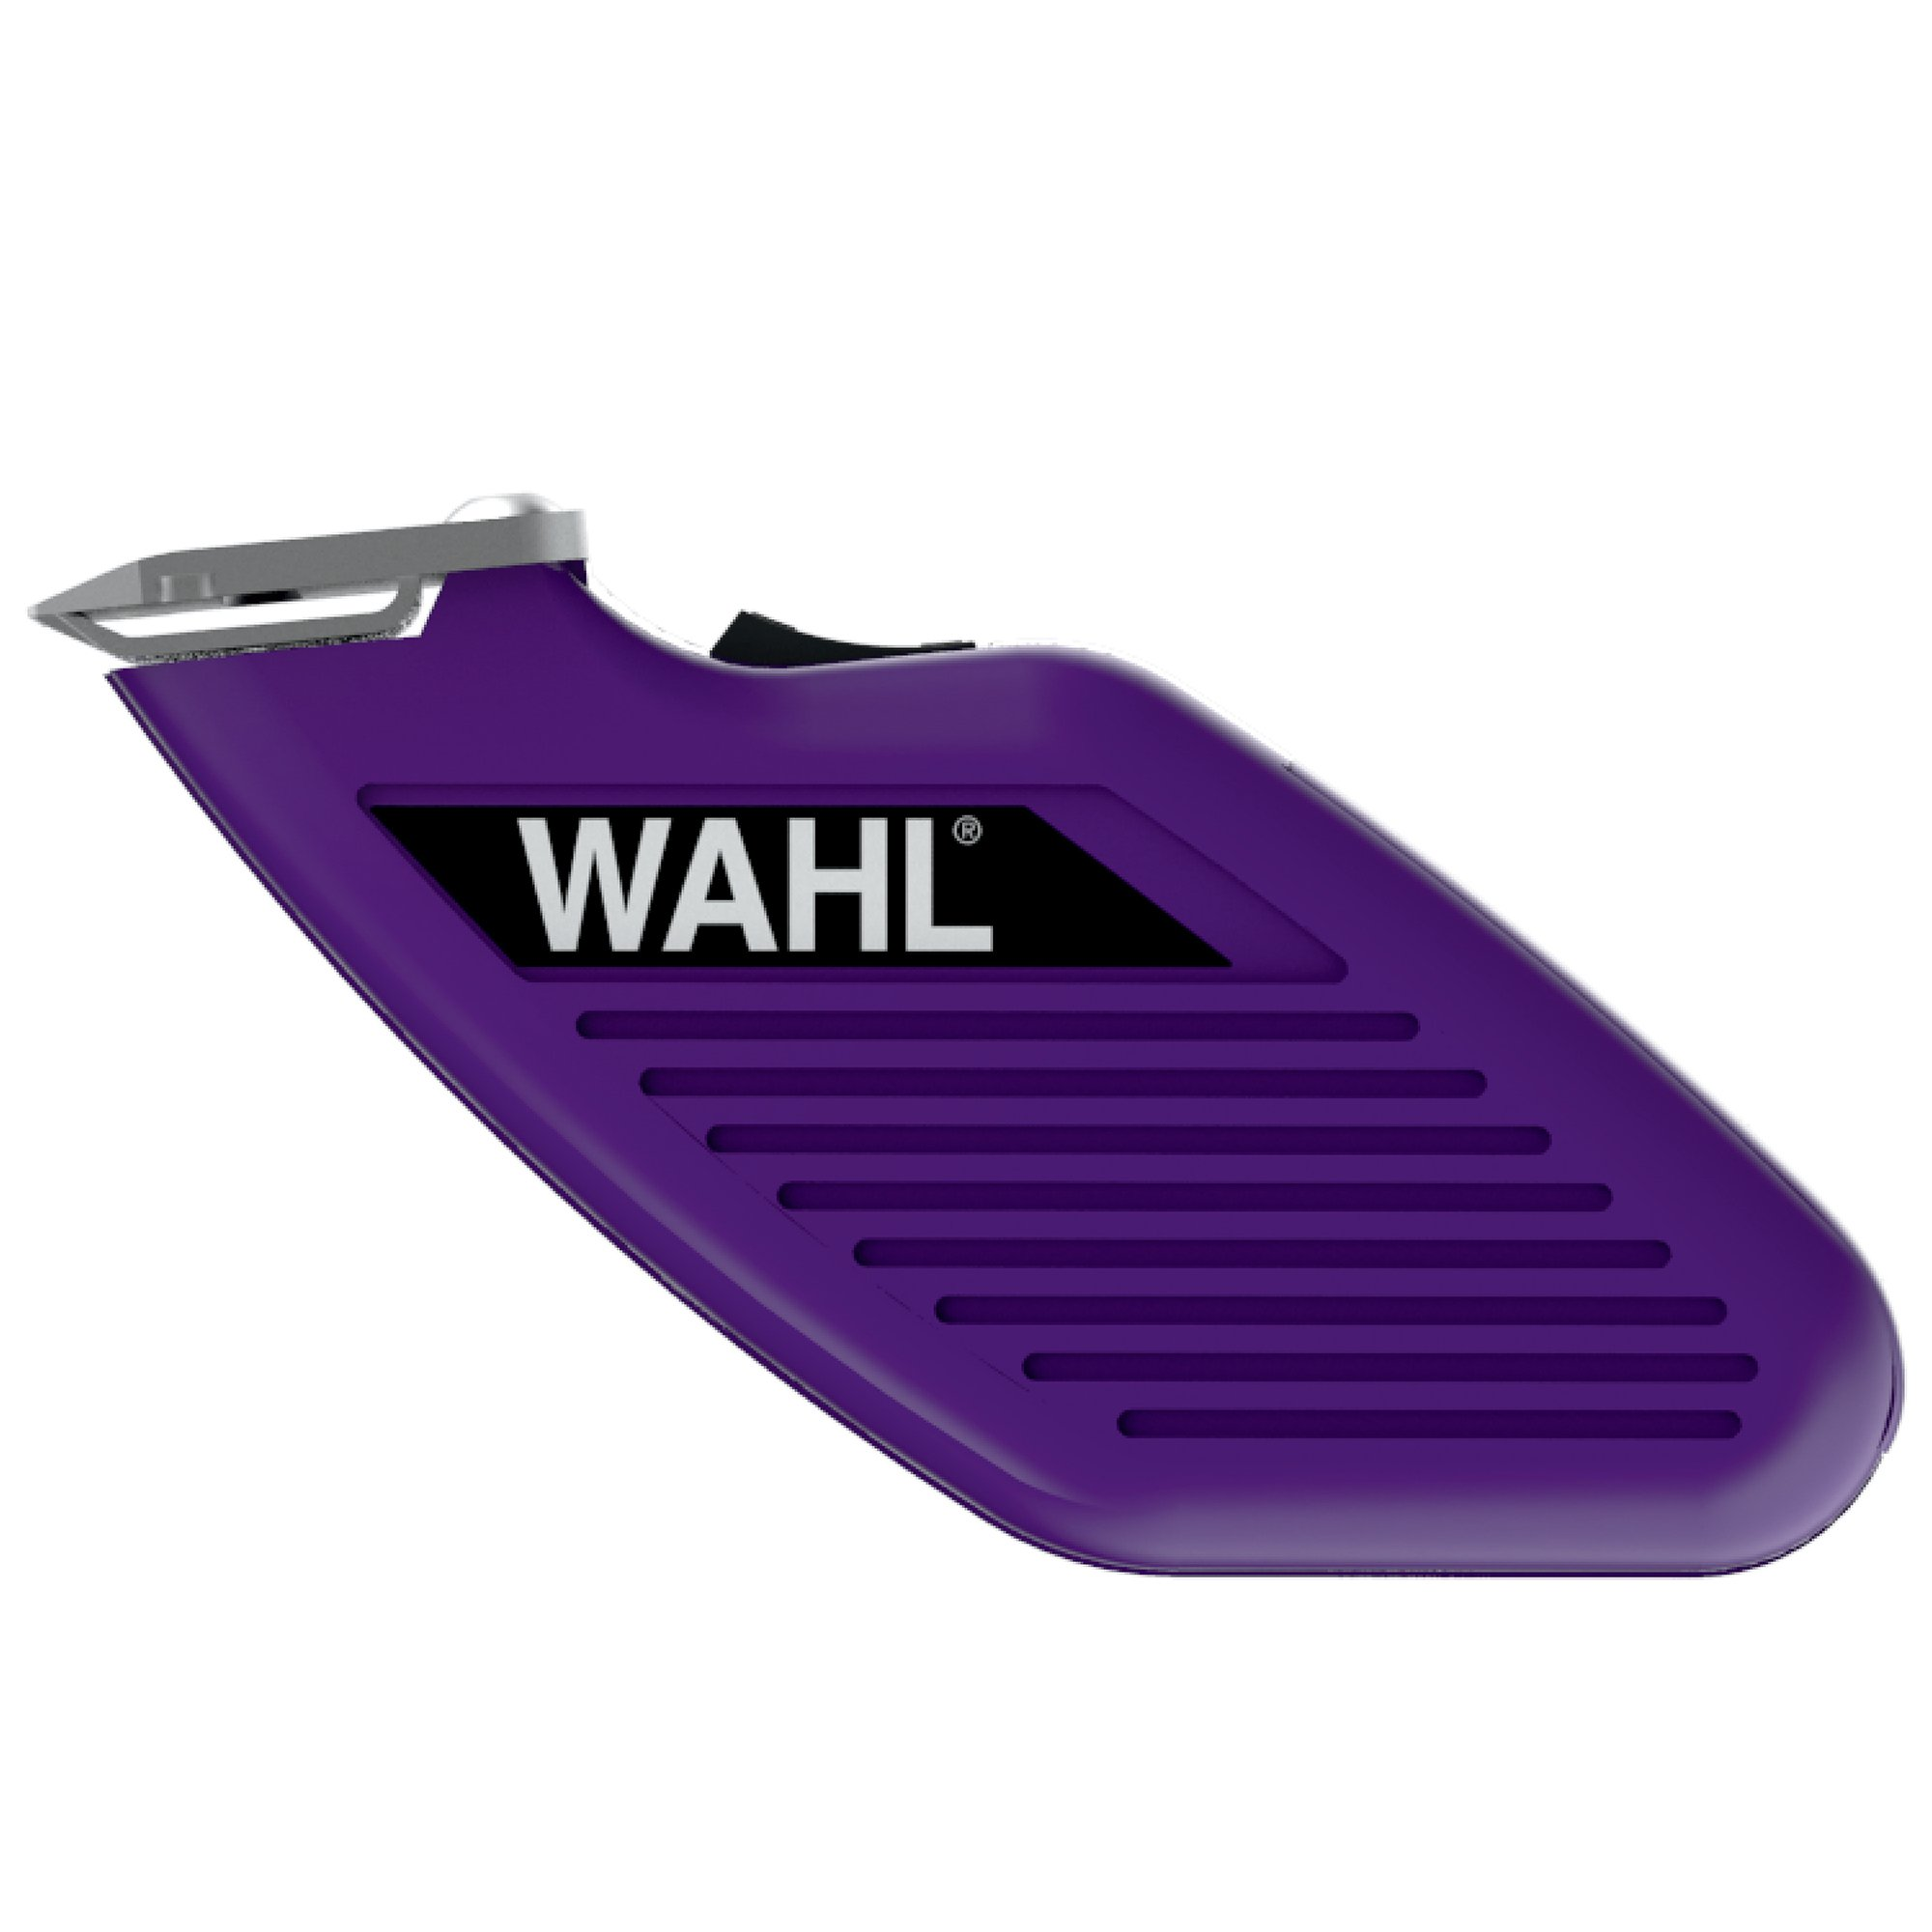 Wahl Professional Animal Pocket Pro Equine Compact Horse Trimmer and Grooming Kit, Purple (#9861-930) by Wahl Professional Animal